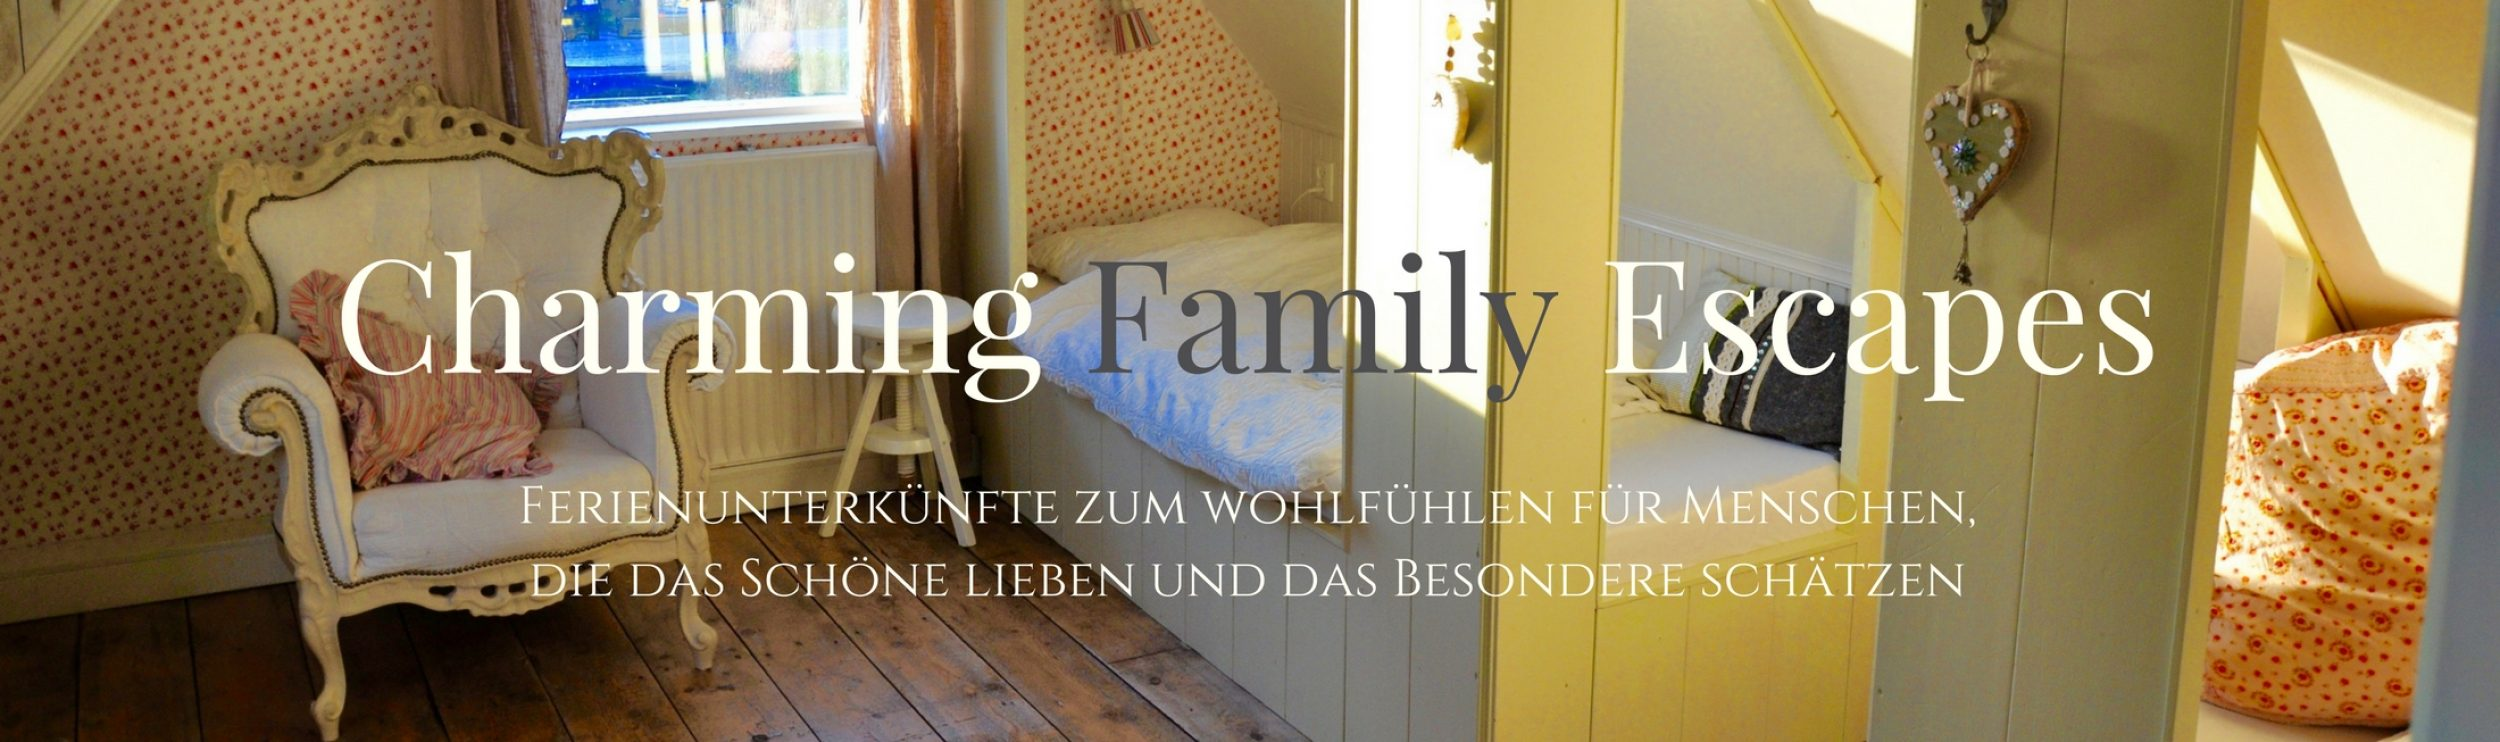 Charming Family Escapes